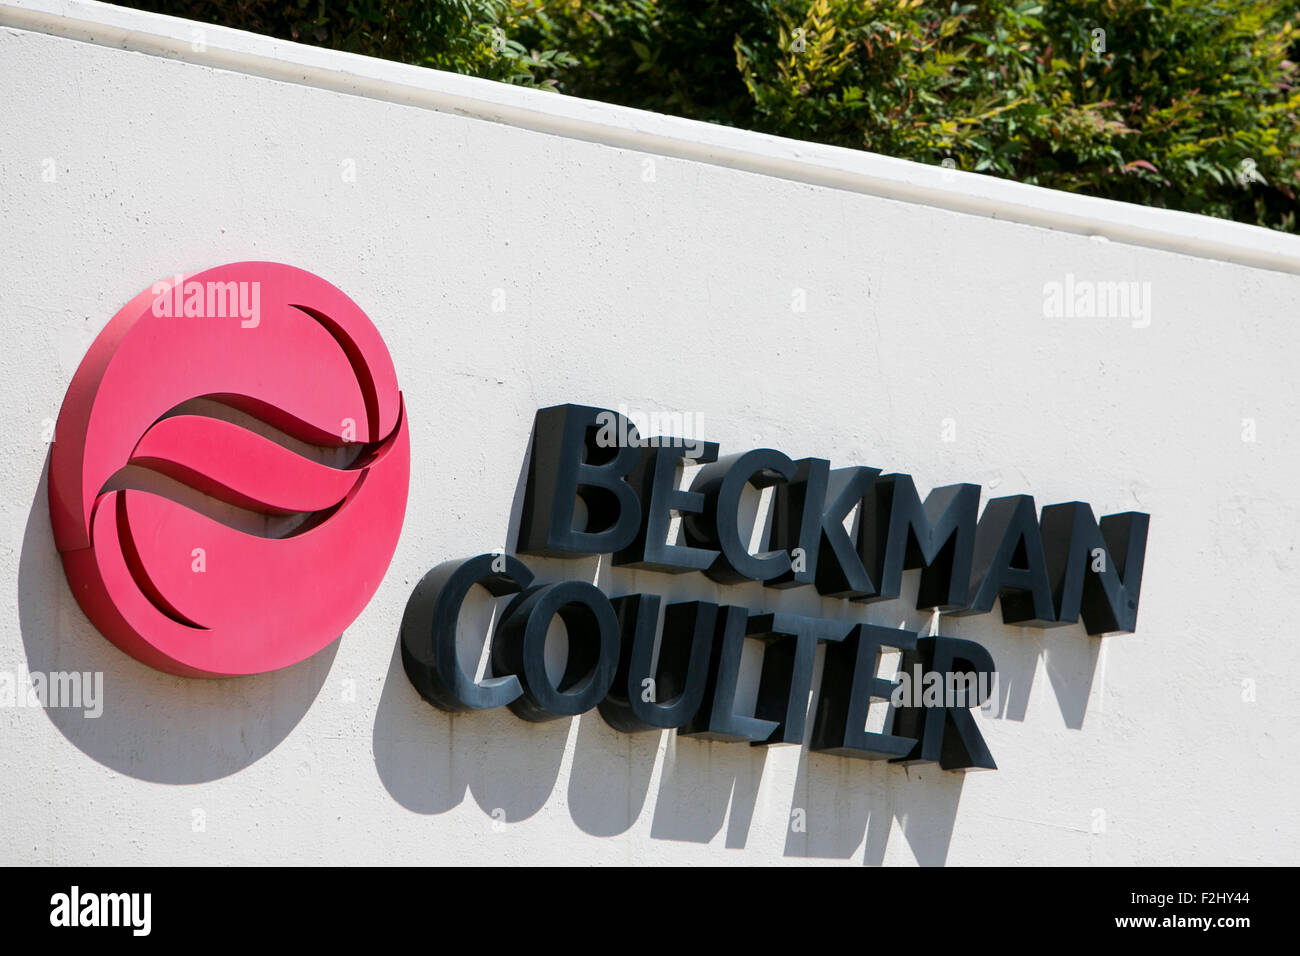 A logo sign outside of a facility occupied by Beckman Coulter Inc., in Irving, Texas on September 13, 2015. - Stock Image